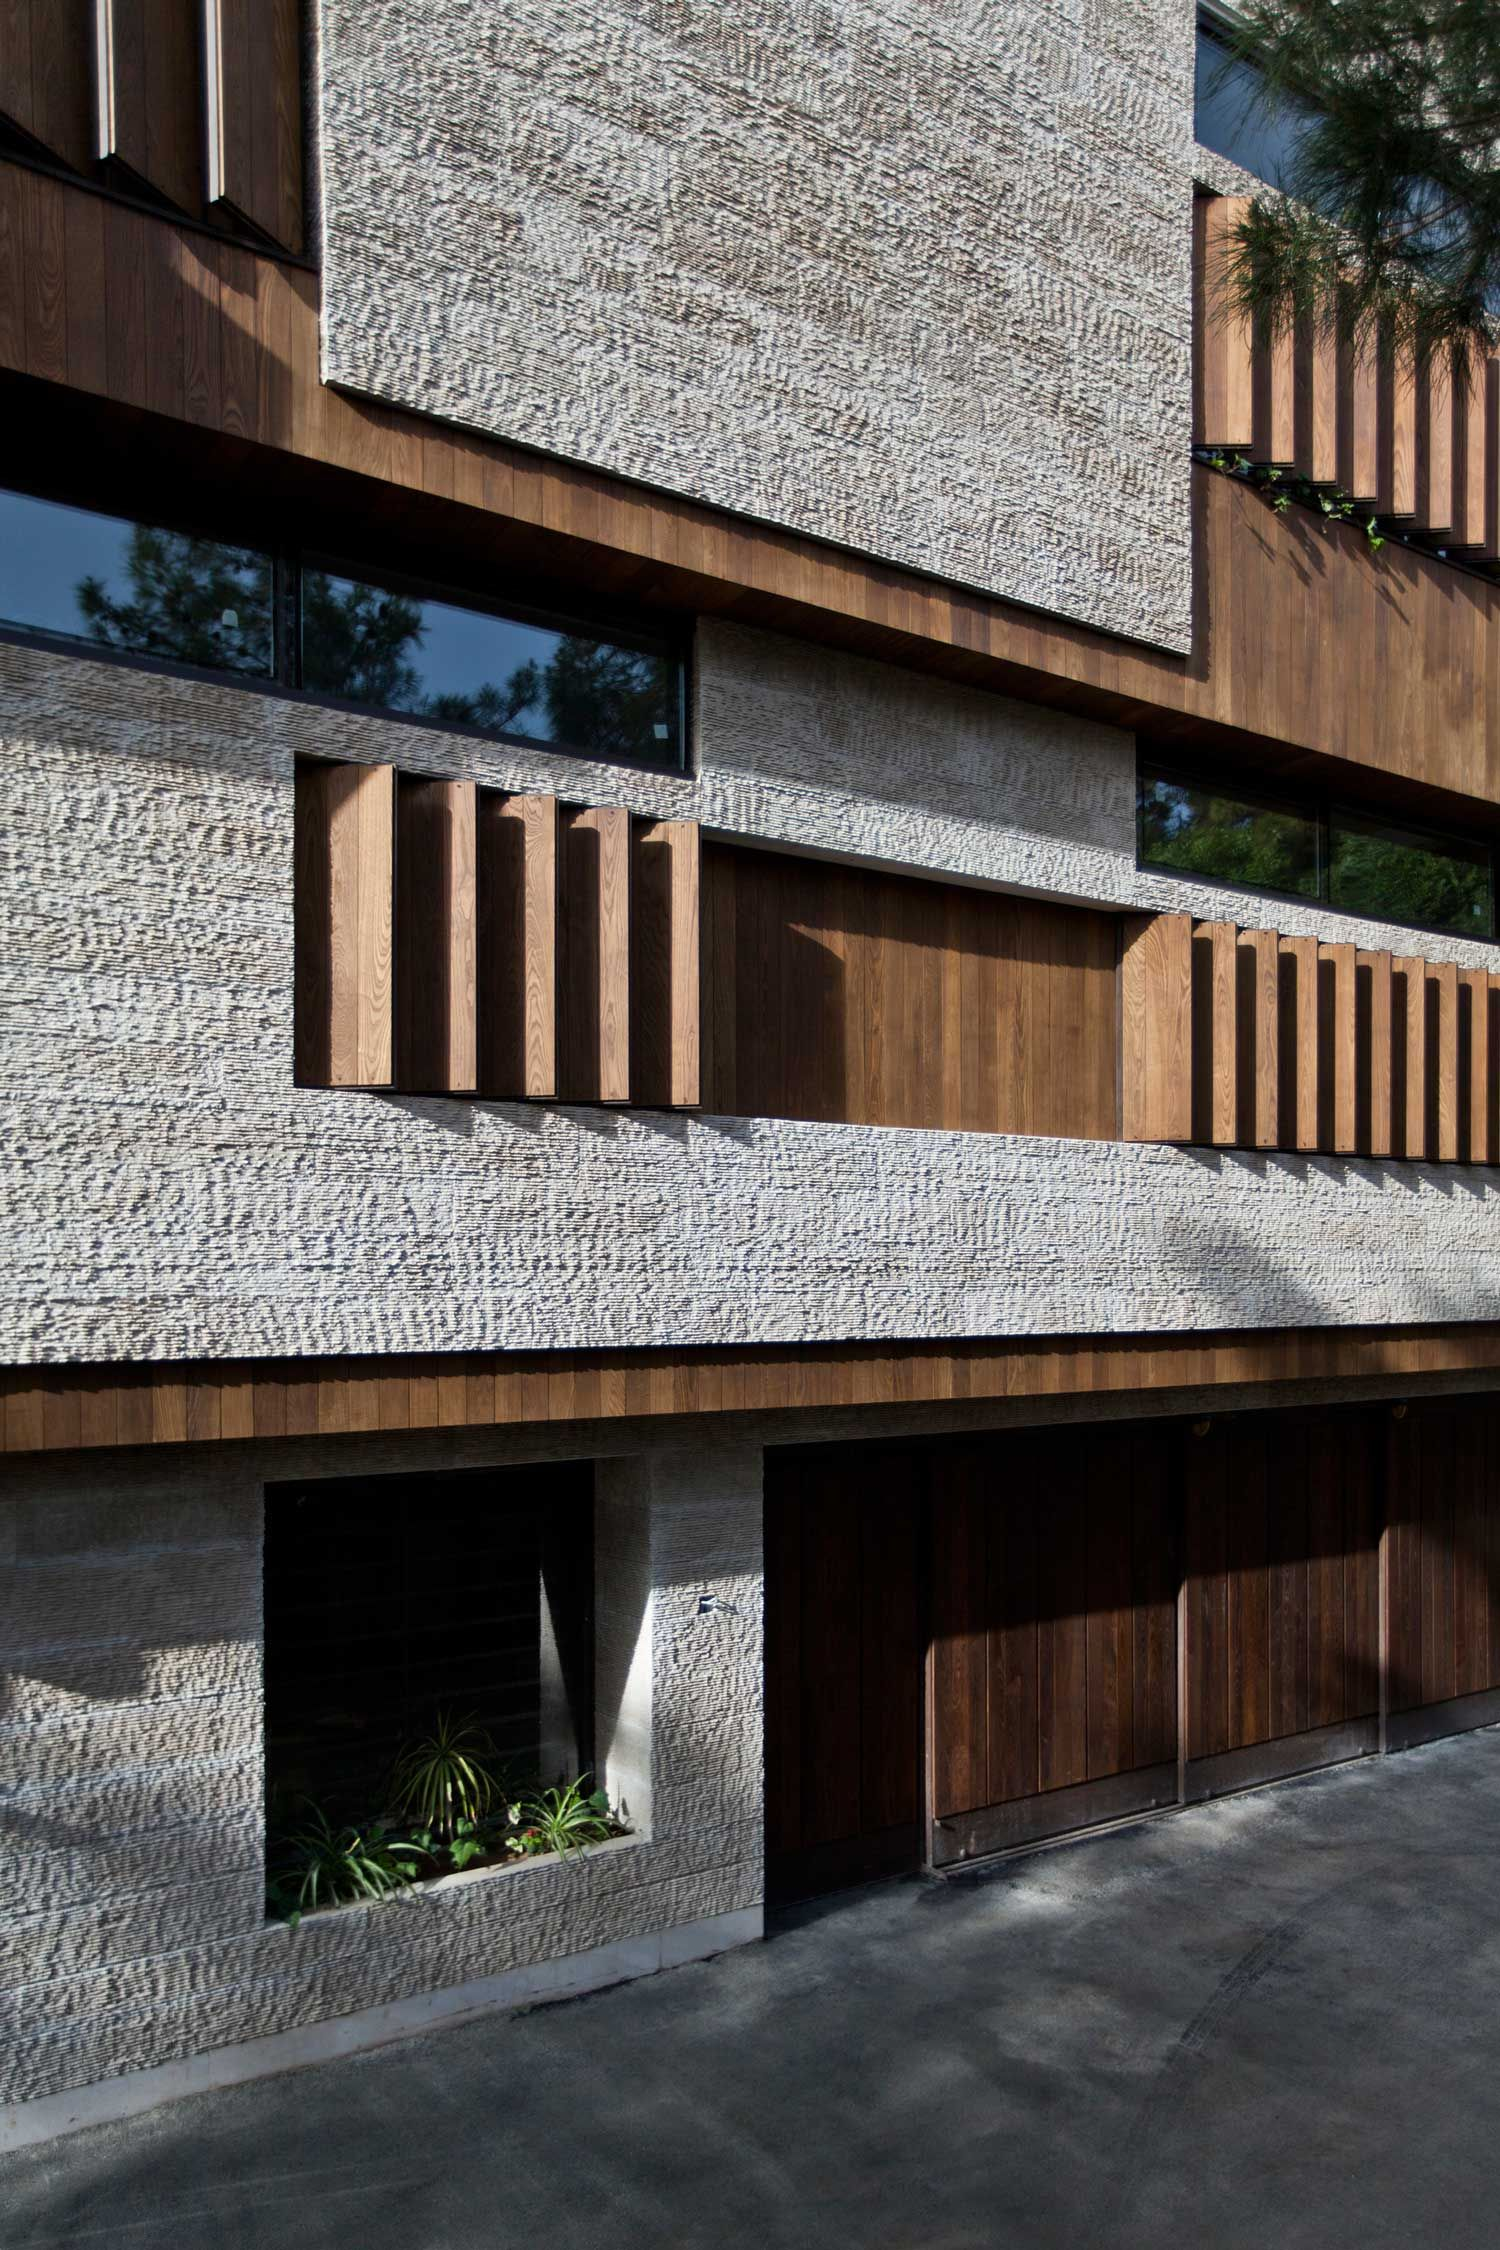 Mehrabad House Sarsayeh Architectural Office: Stories On Design: Iran's Contemporary Architecture Boom.